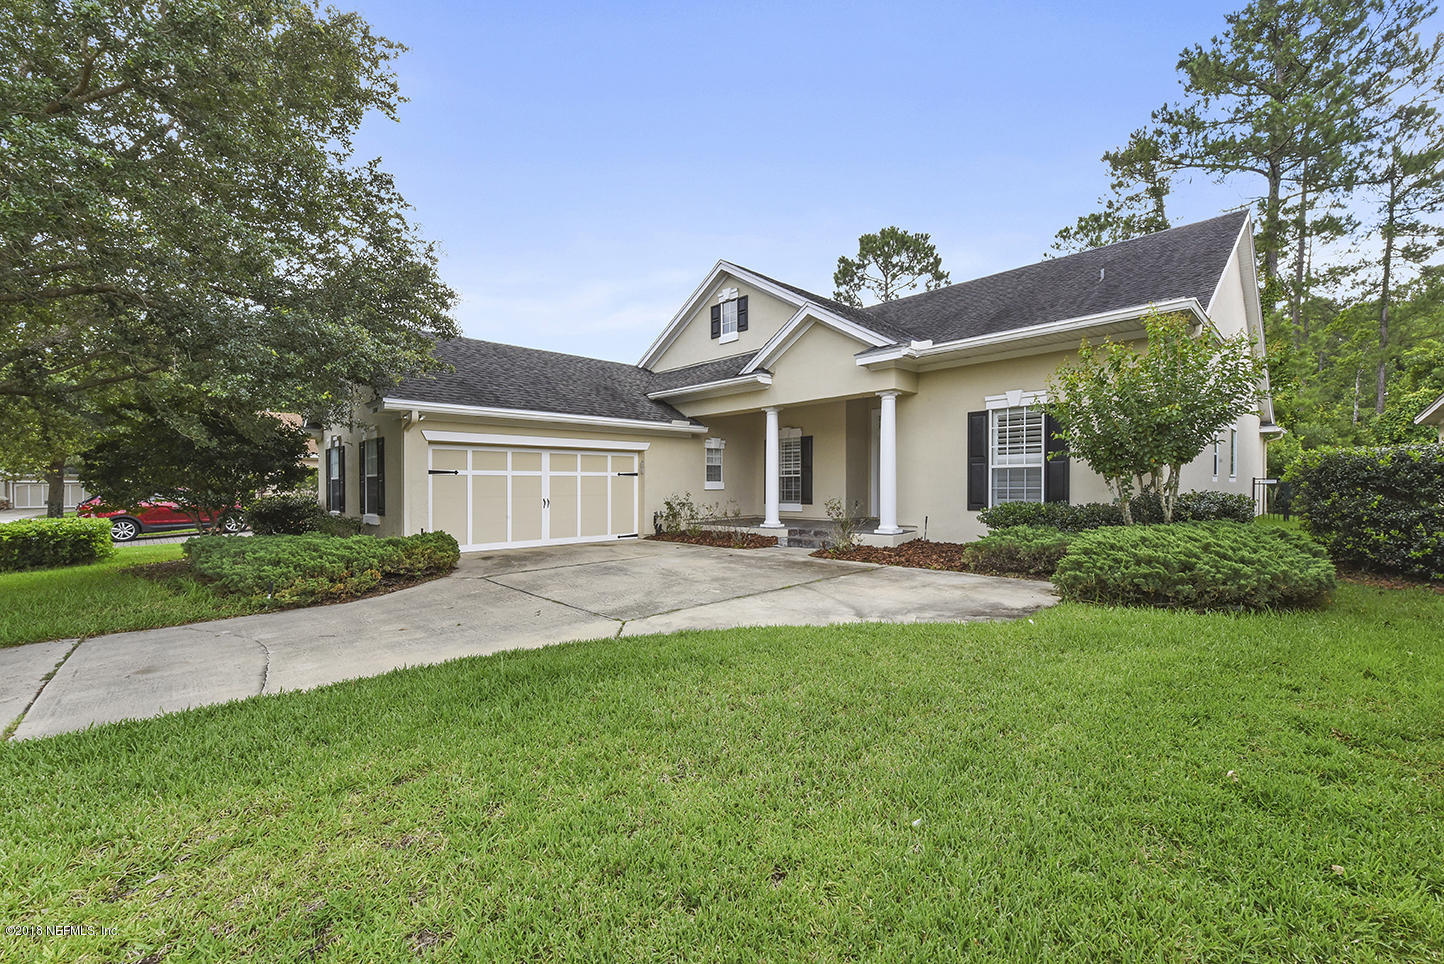 1304 CHELSEY, ST AUGUSTINE, FLORIDA 32092, 5 Bedrooms Bedrooms, ,3 BathroomsBathrooms,Residential - single family,For sale,CHELSEY,942183